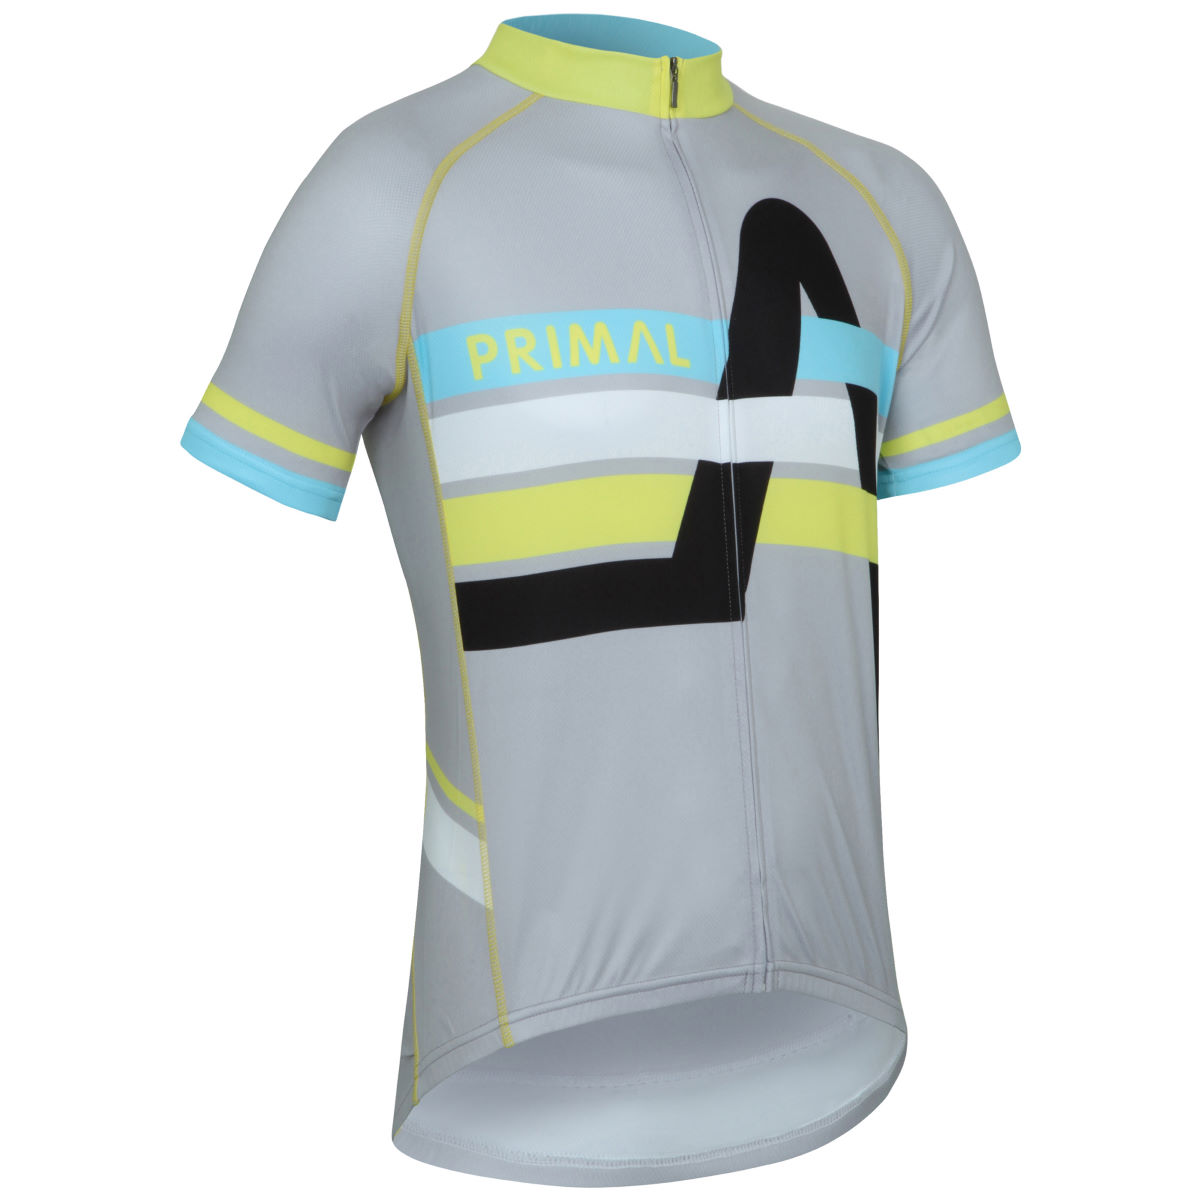 Maillot Primal Ground Control Sport Cut - S Multi Coloured Maillots